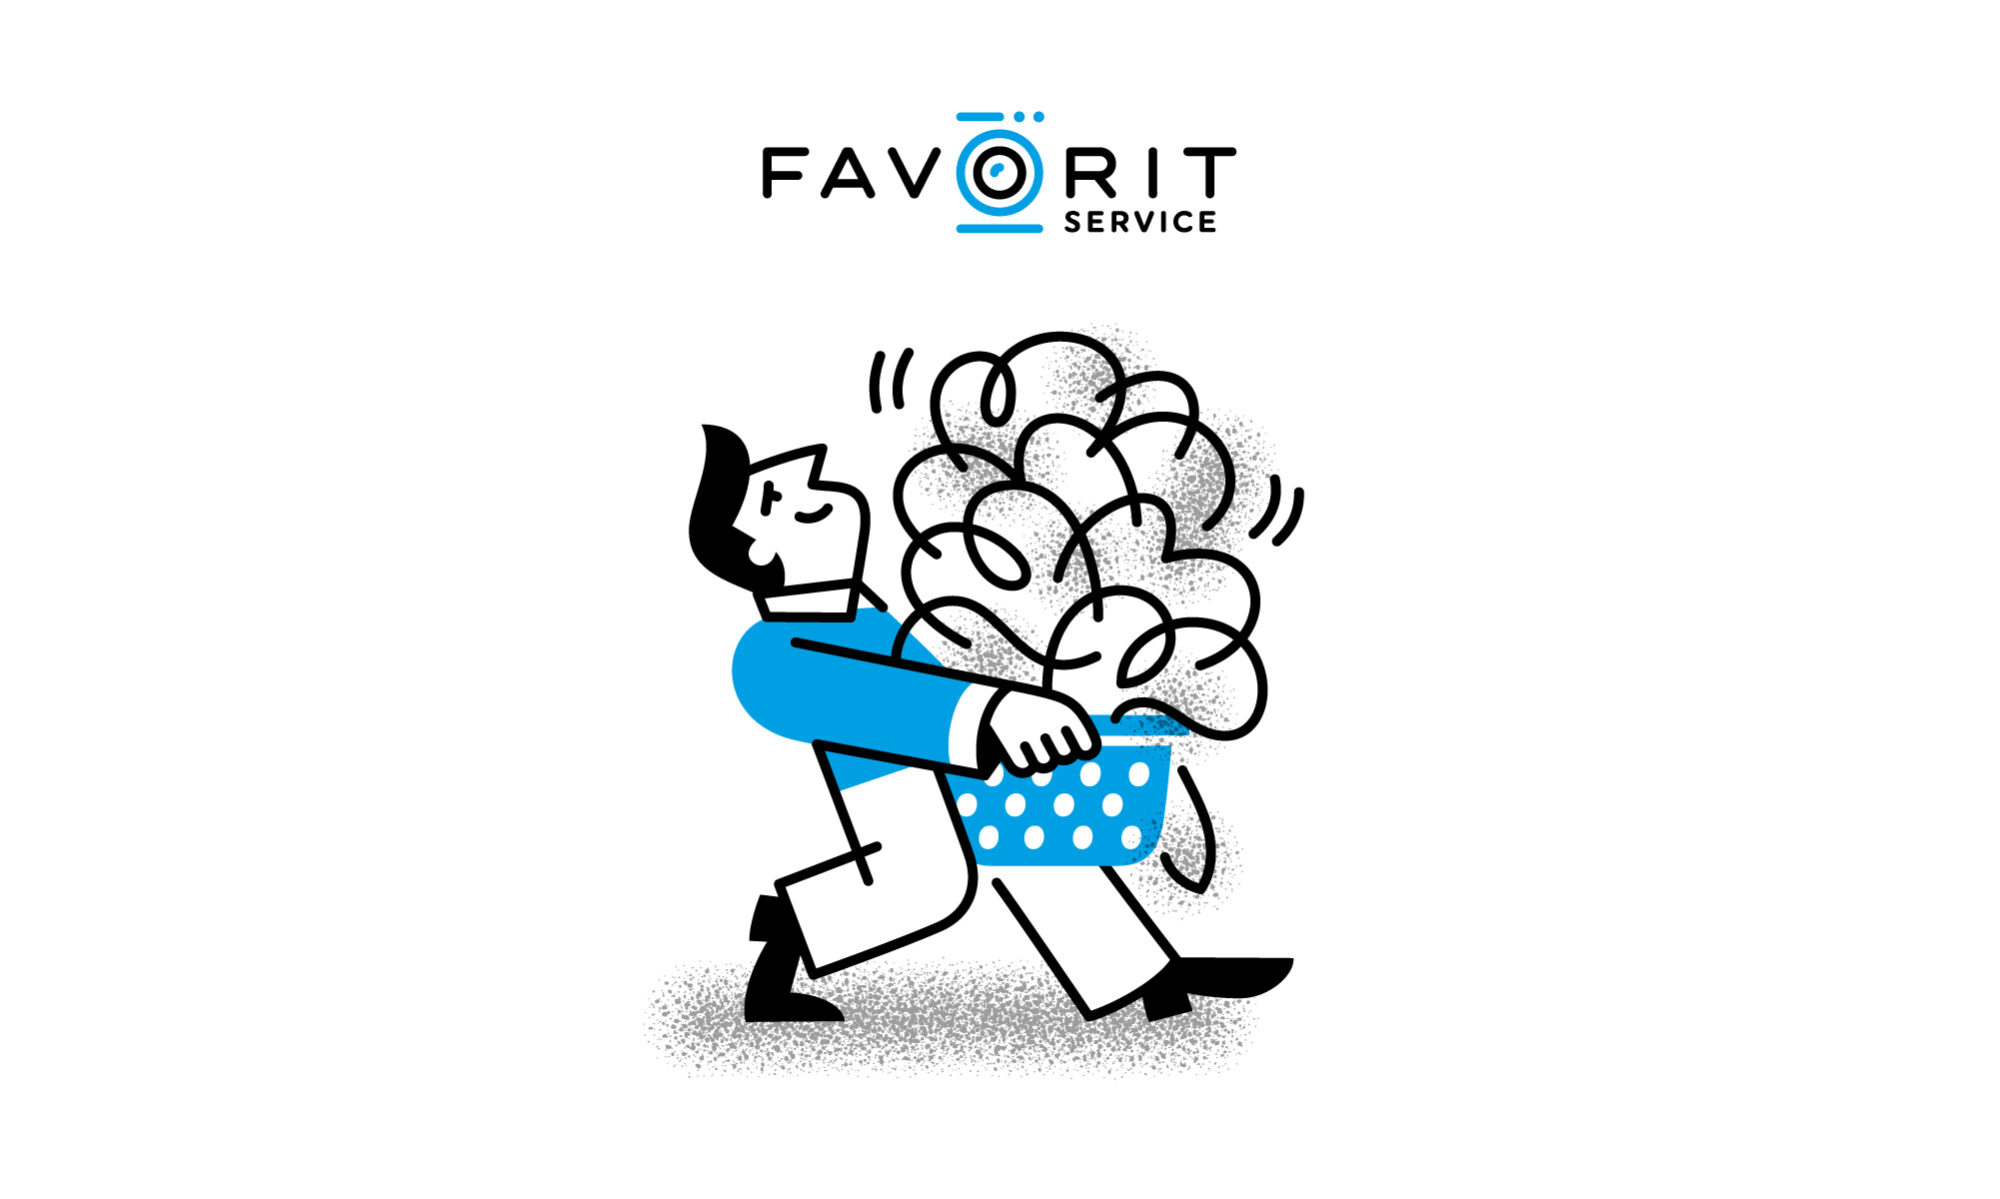 Favorit Service